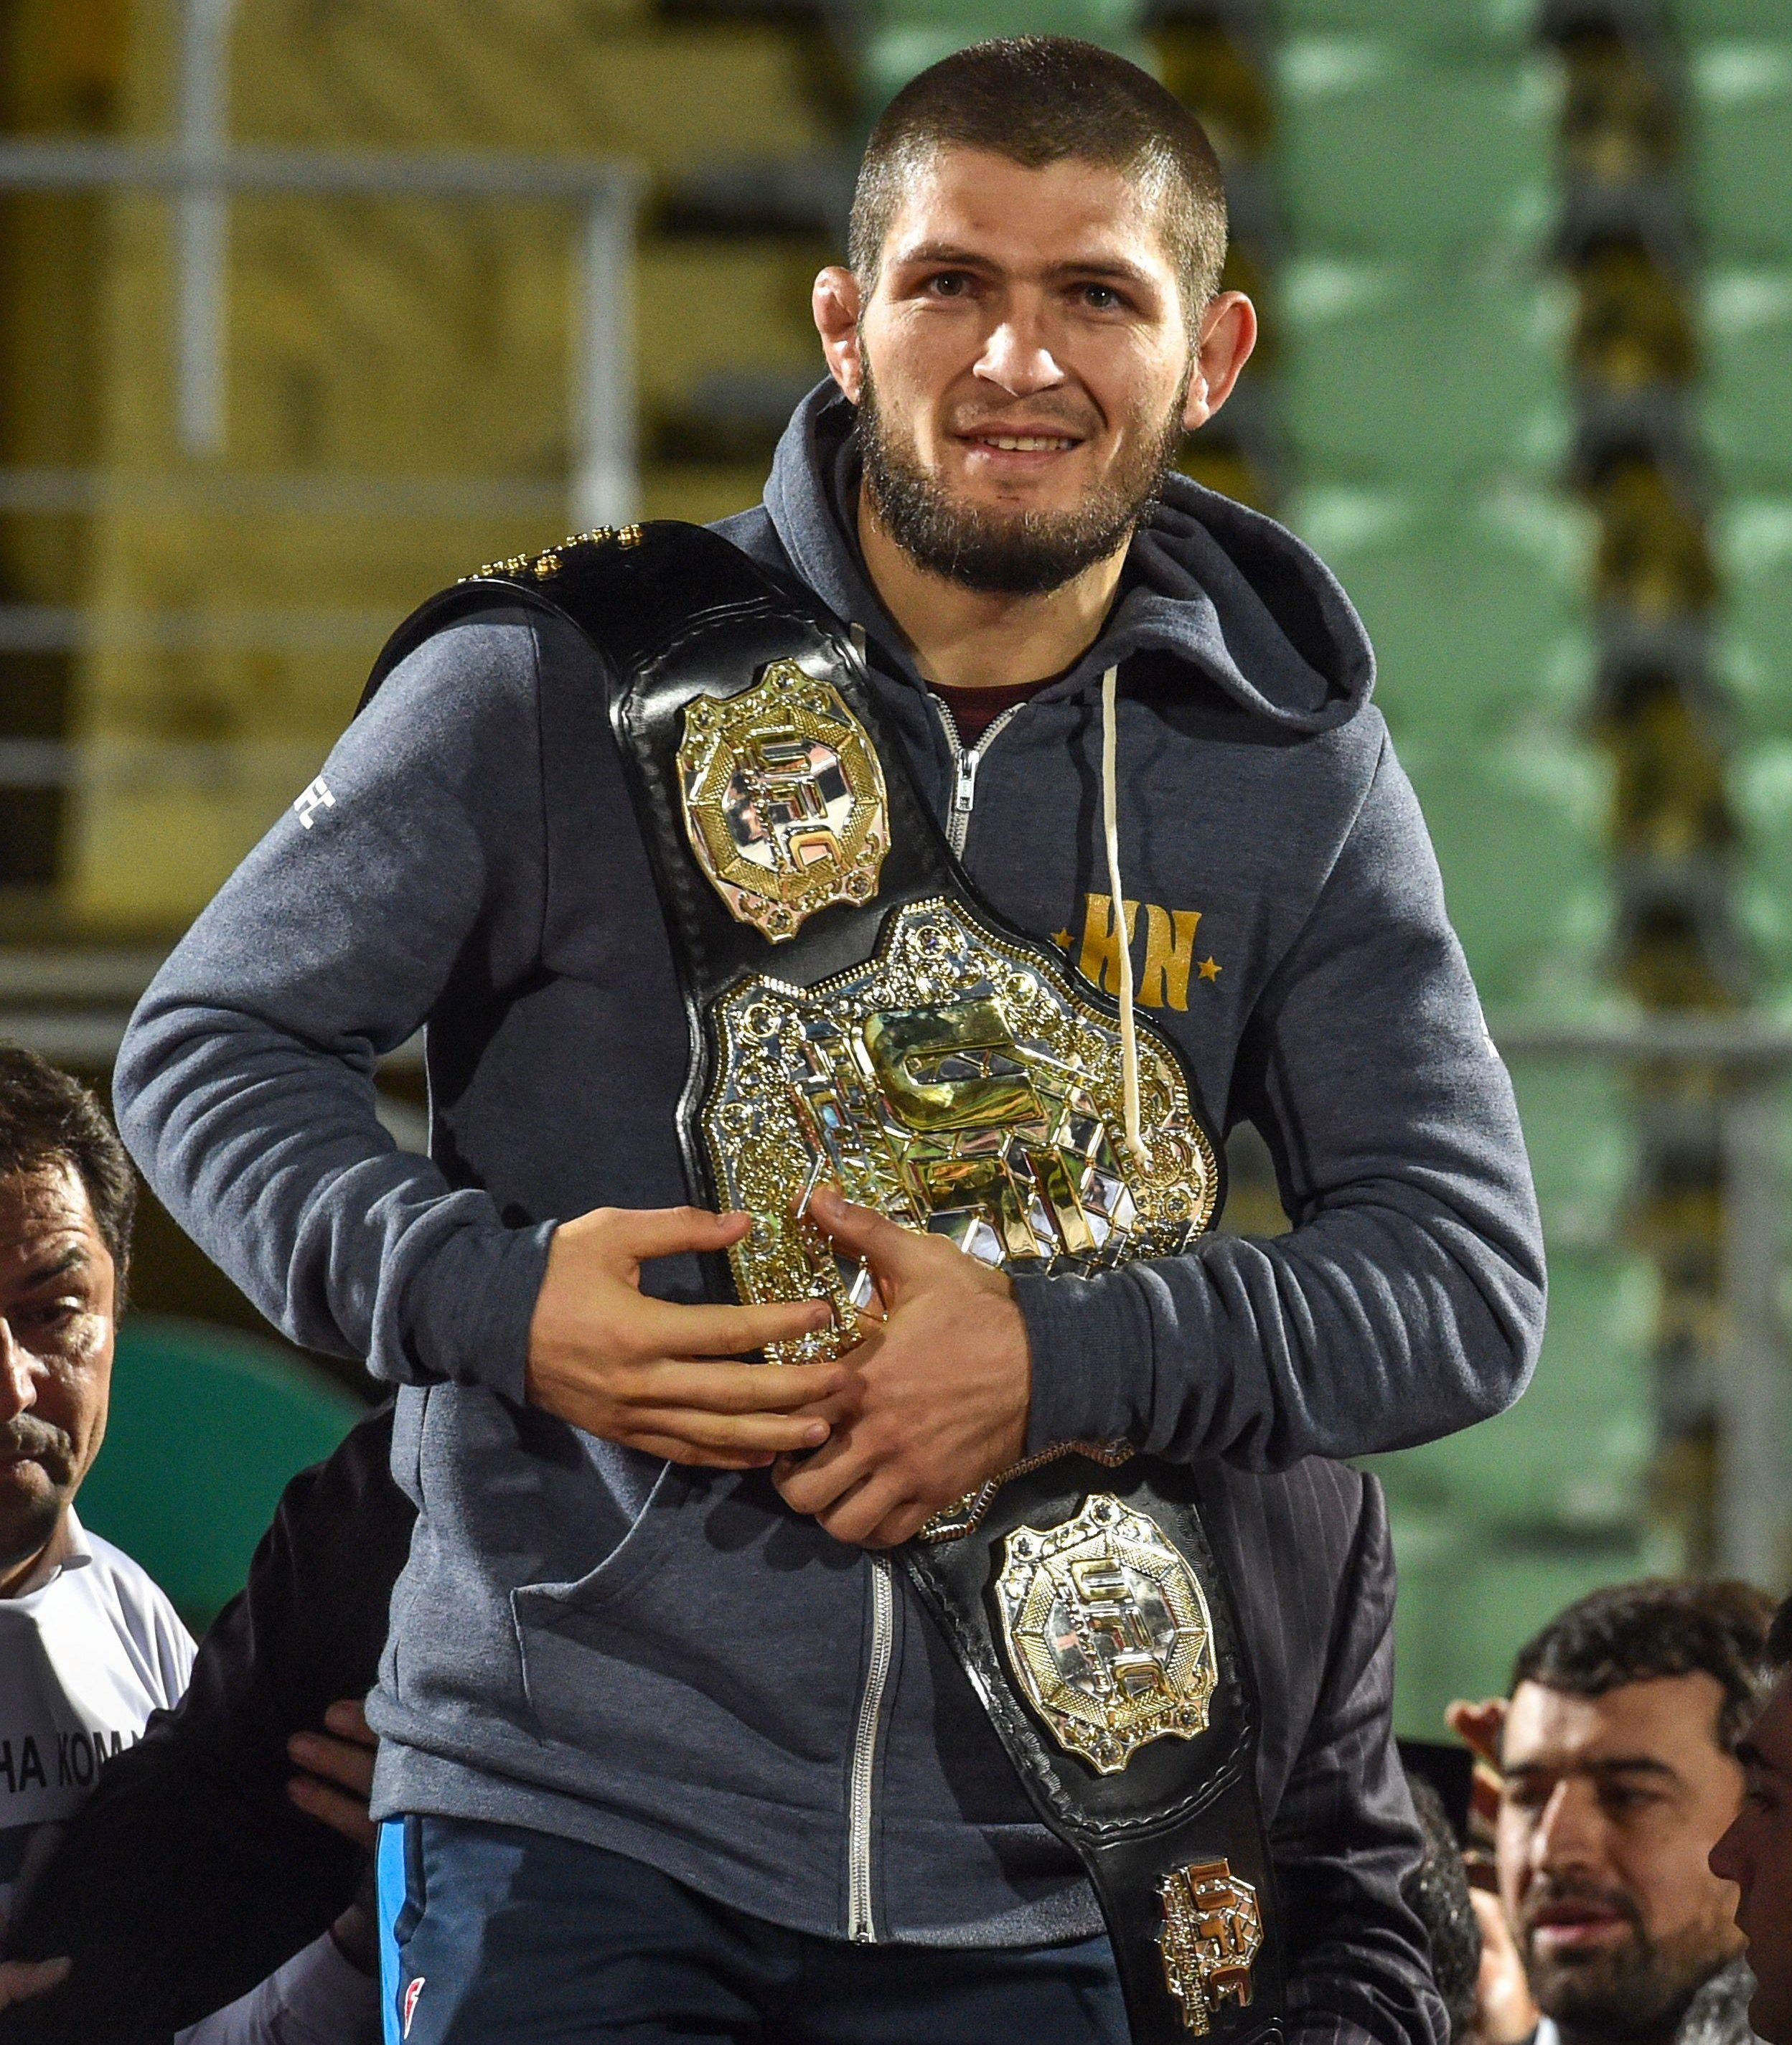 Khabib Nurmagomedov's team claim he would be too big and powerful for Floyd Mayweather, so would KO the boxing legend